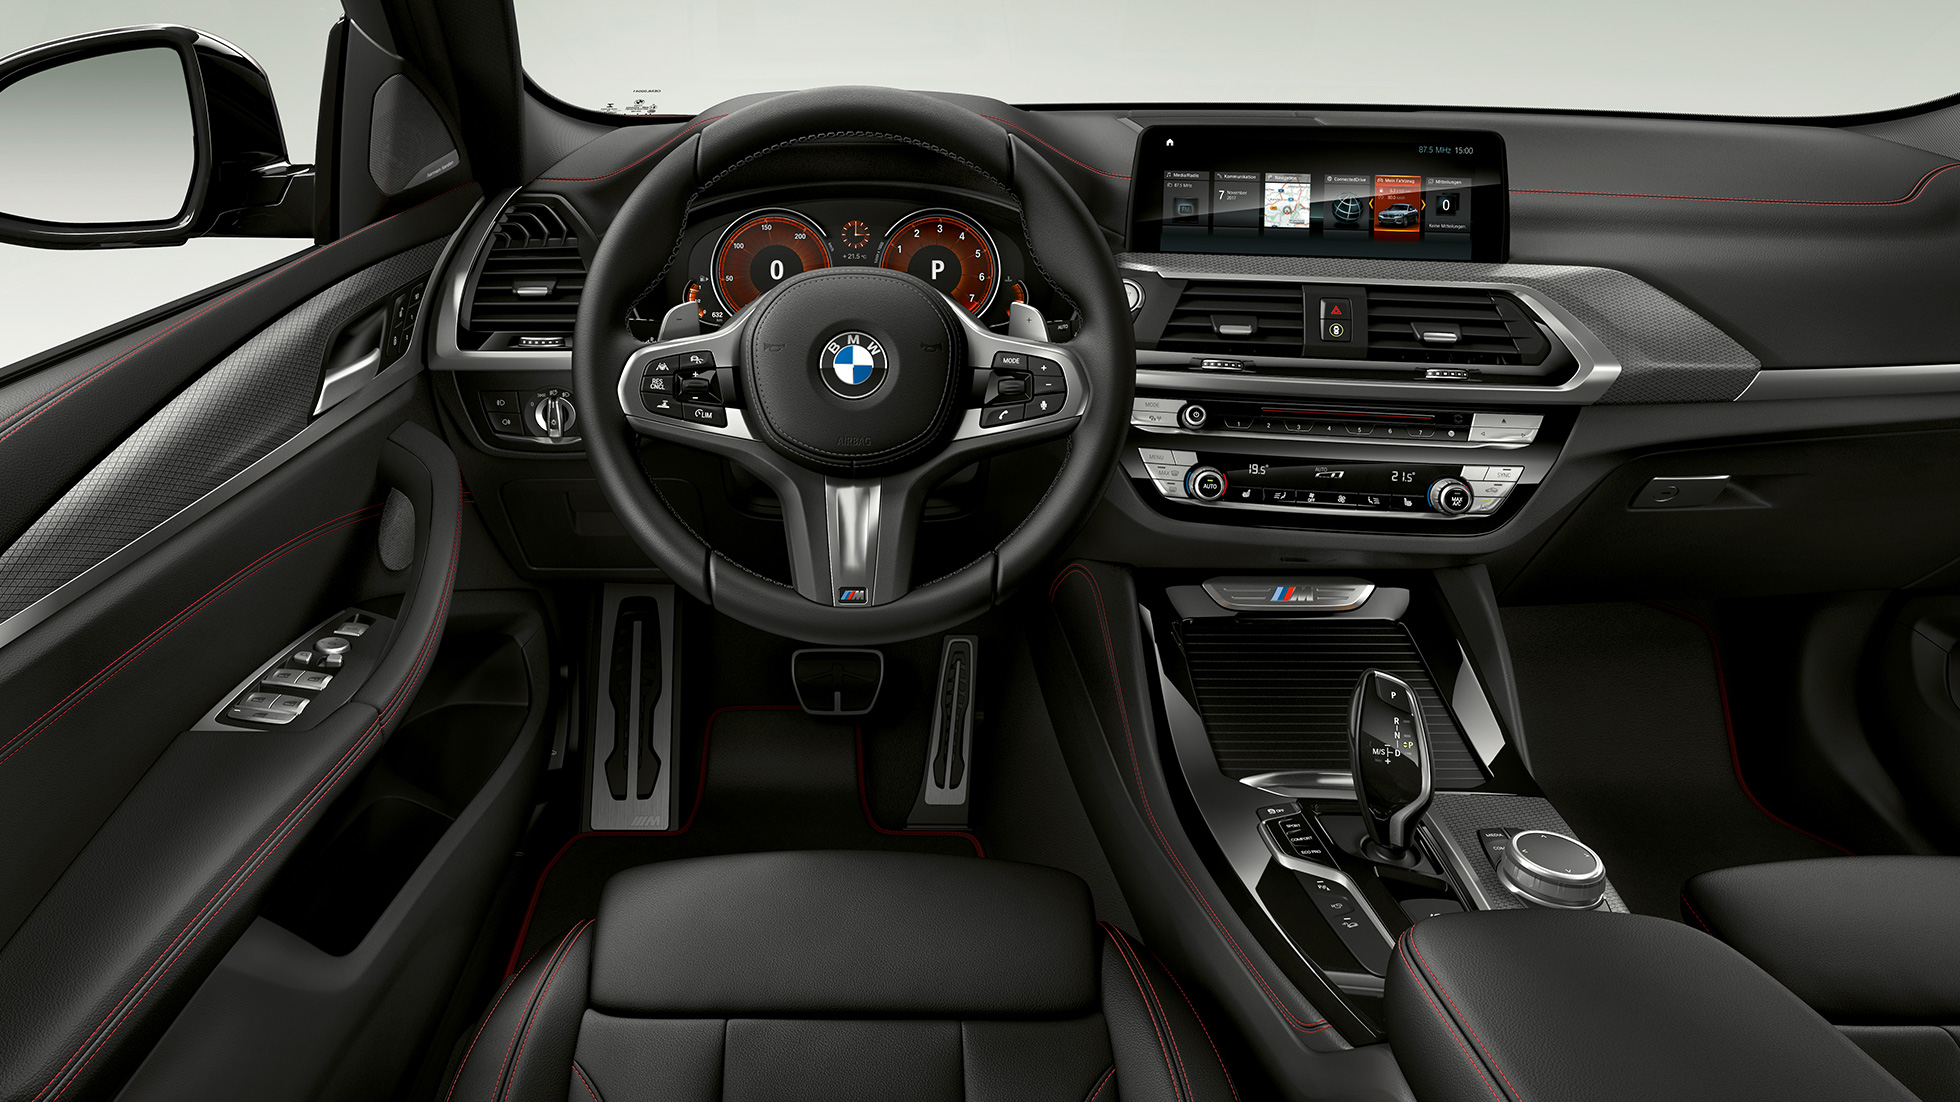 BMW X4 M40i and BMW X4 M40d, interior, cockpit with sport seats and M leather steering wheel.